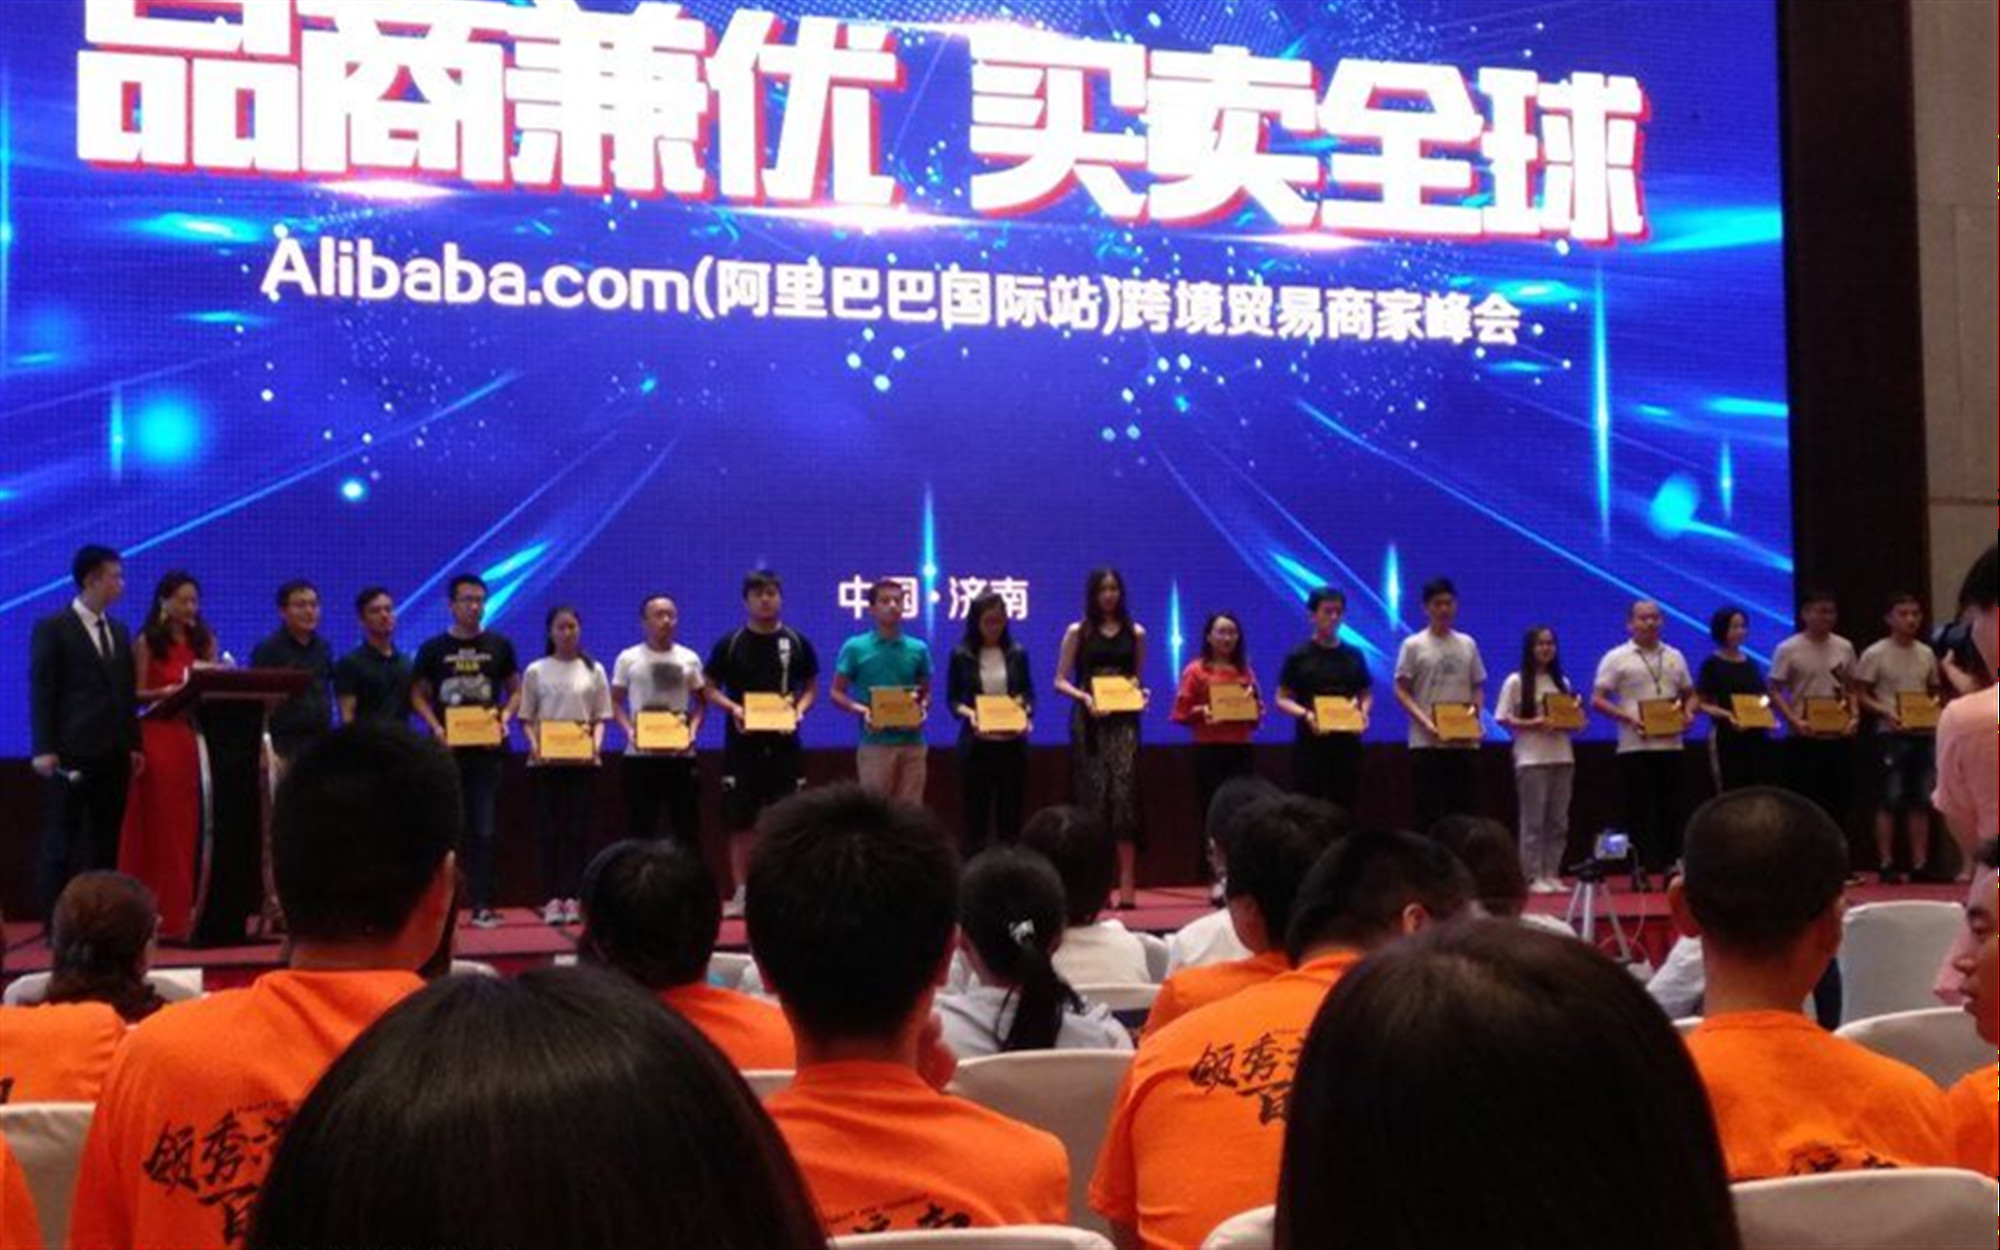 March Expo Awards at Jinan Headquarters in Alibaba